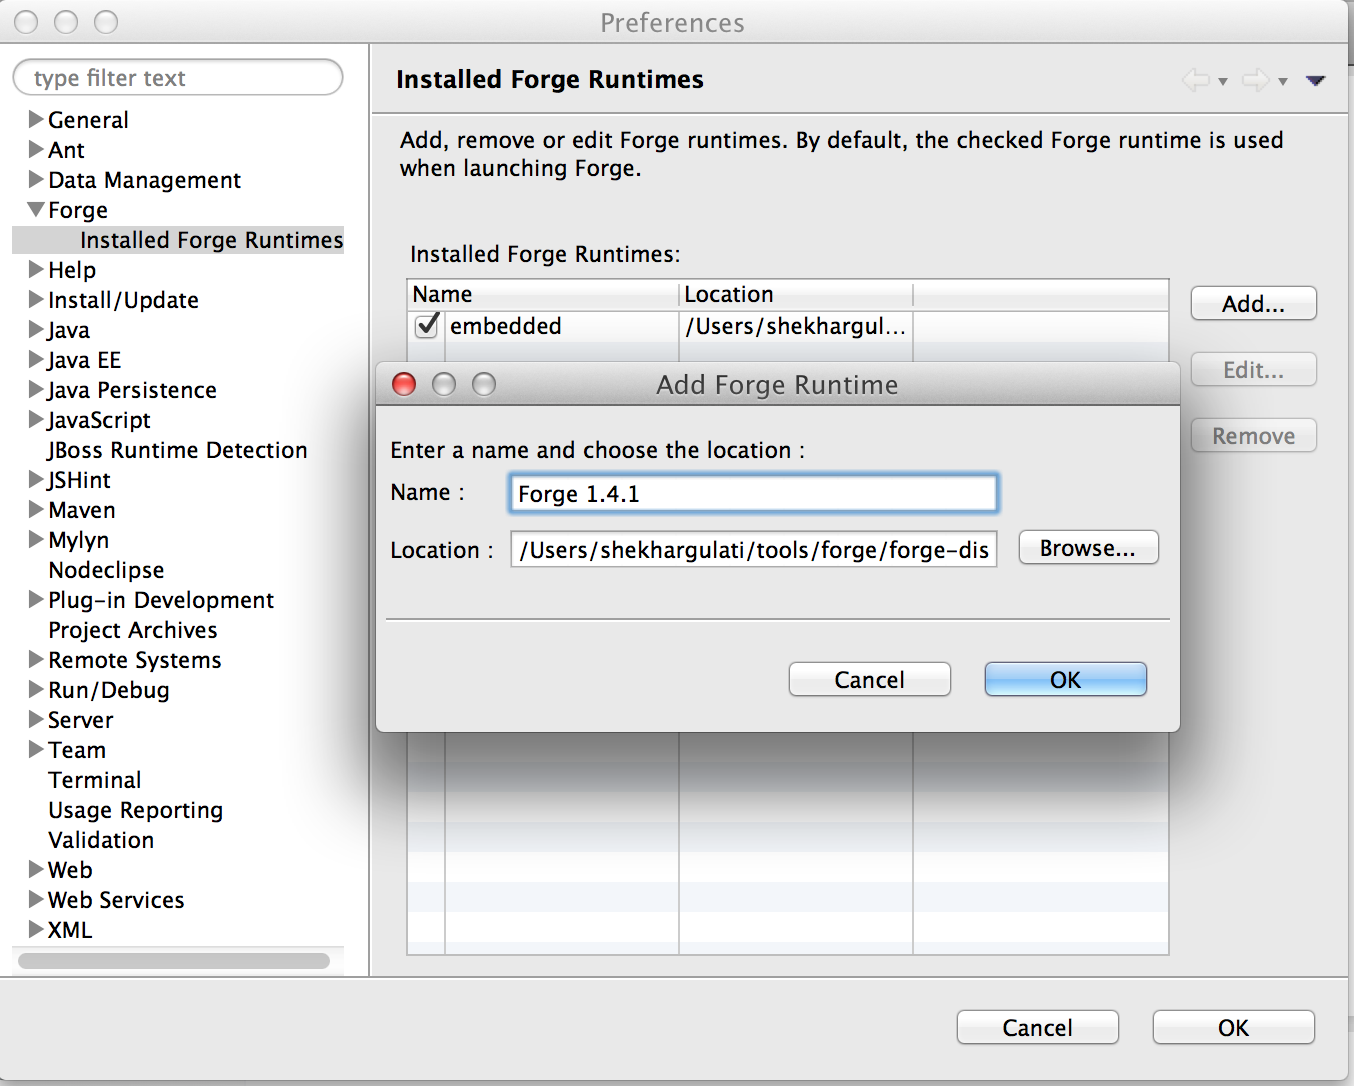 Add New Forge Runtime